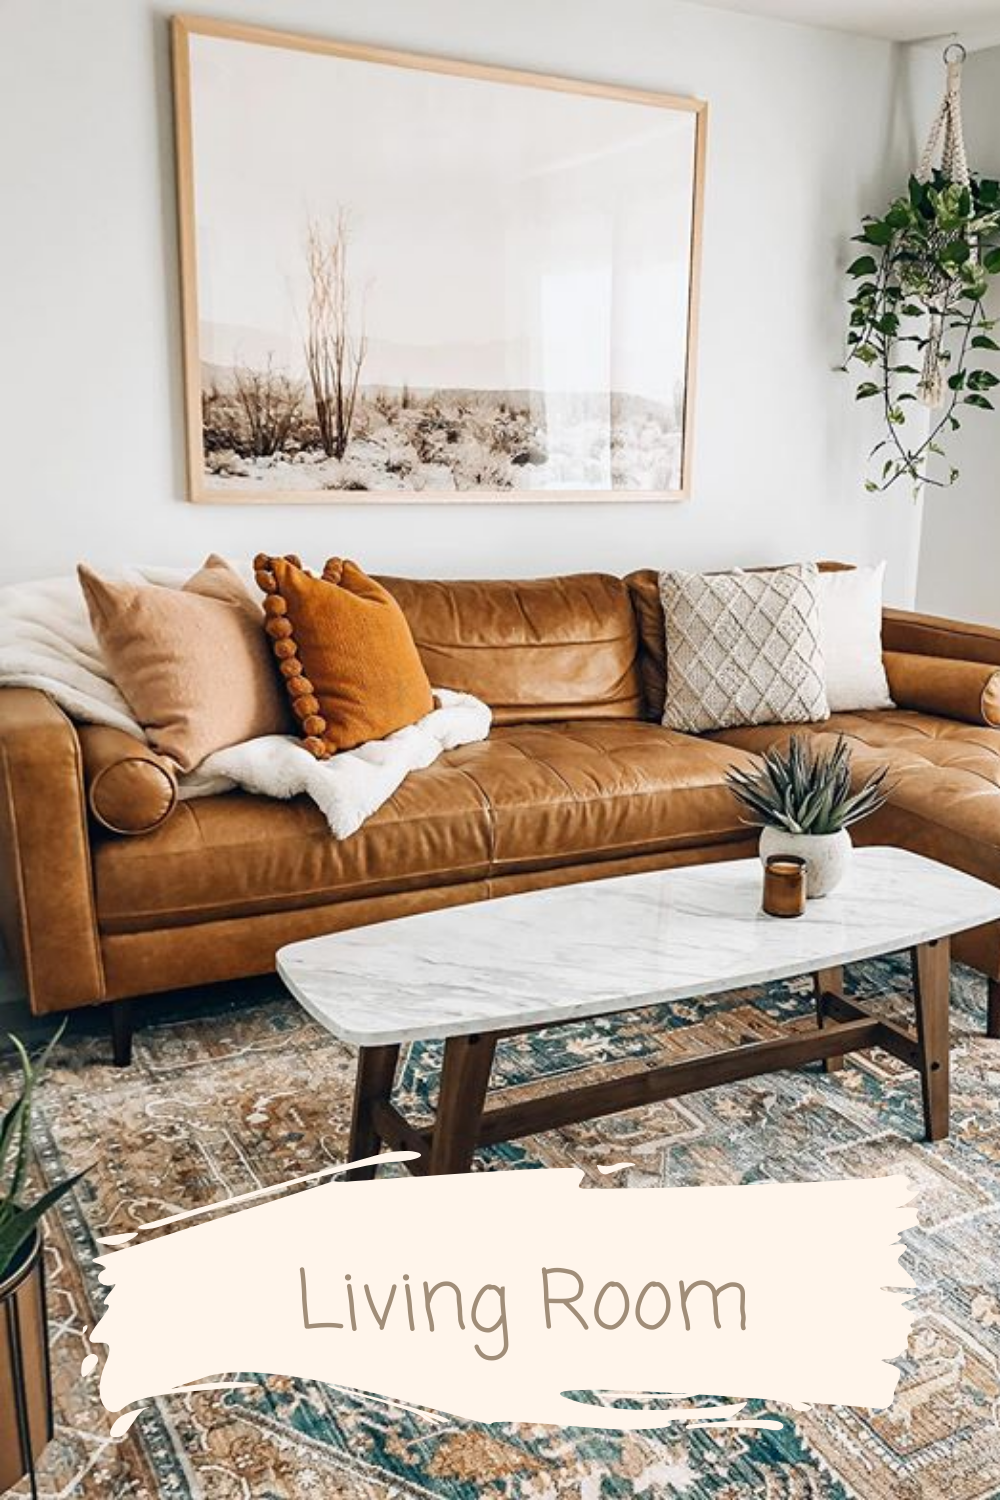 10 Simple Home Decor Ideas For Your Boho Living Room Ideas In